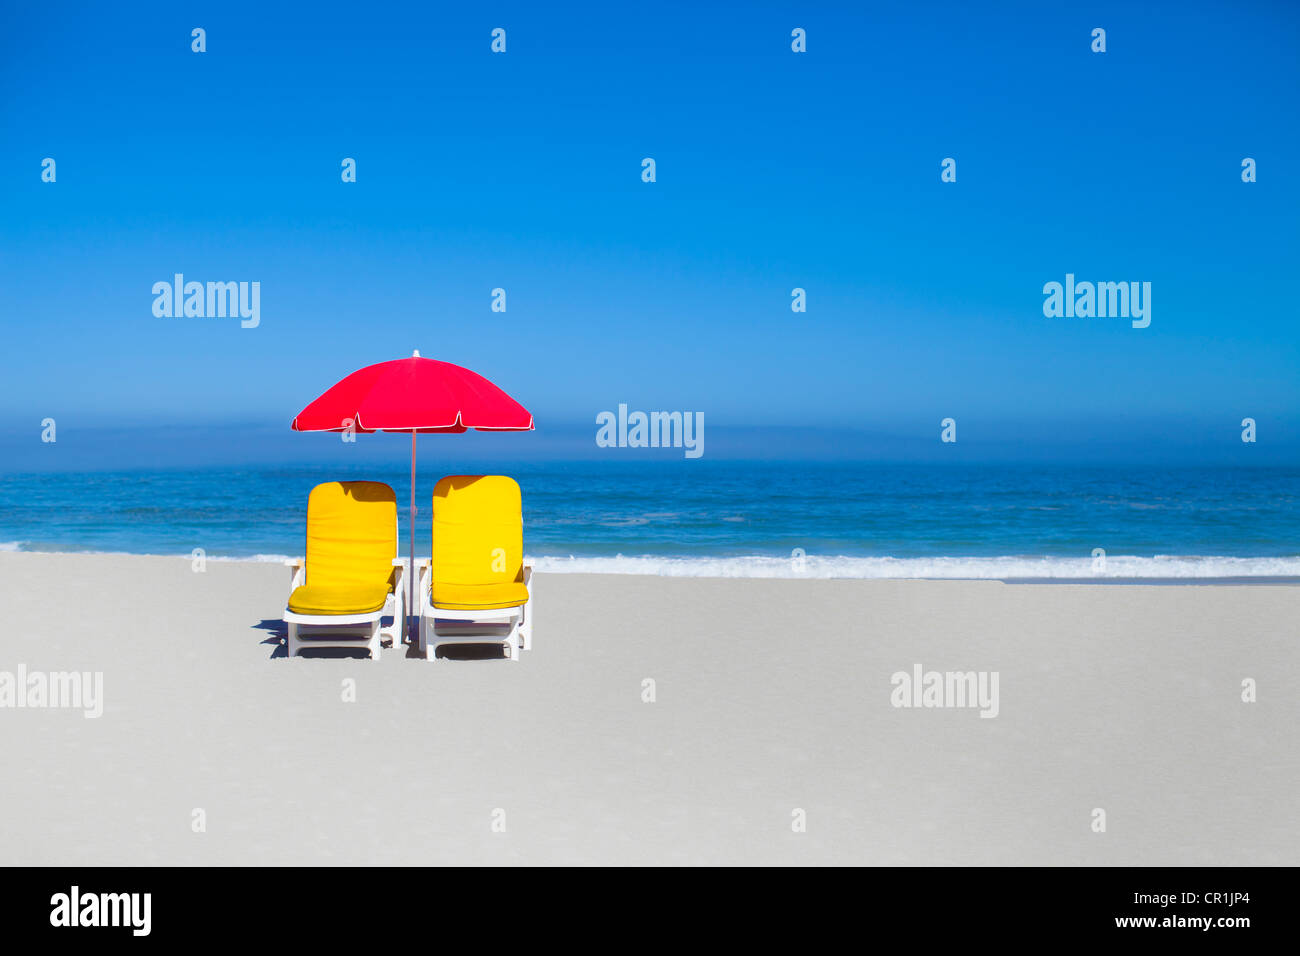 Empty lawn chairs and umbrella on beach - Stock Image